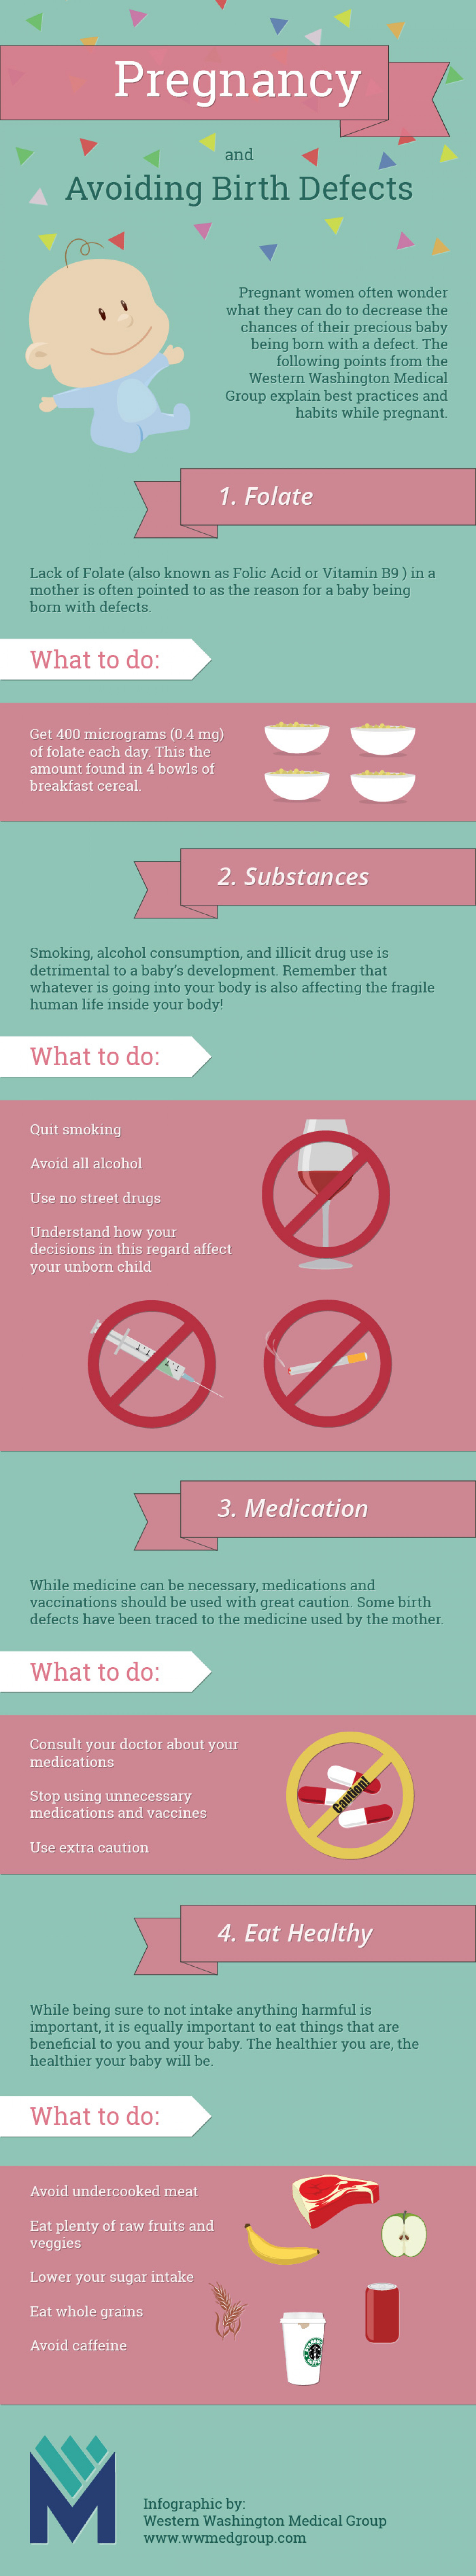 Pregnancy and Avoiding Birth Defects  Infographic